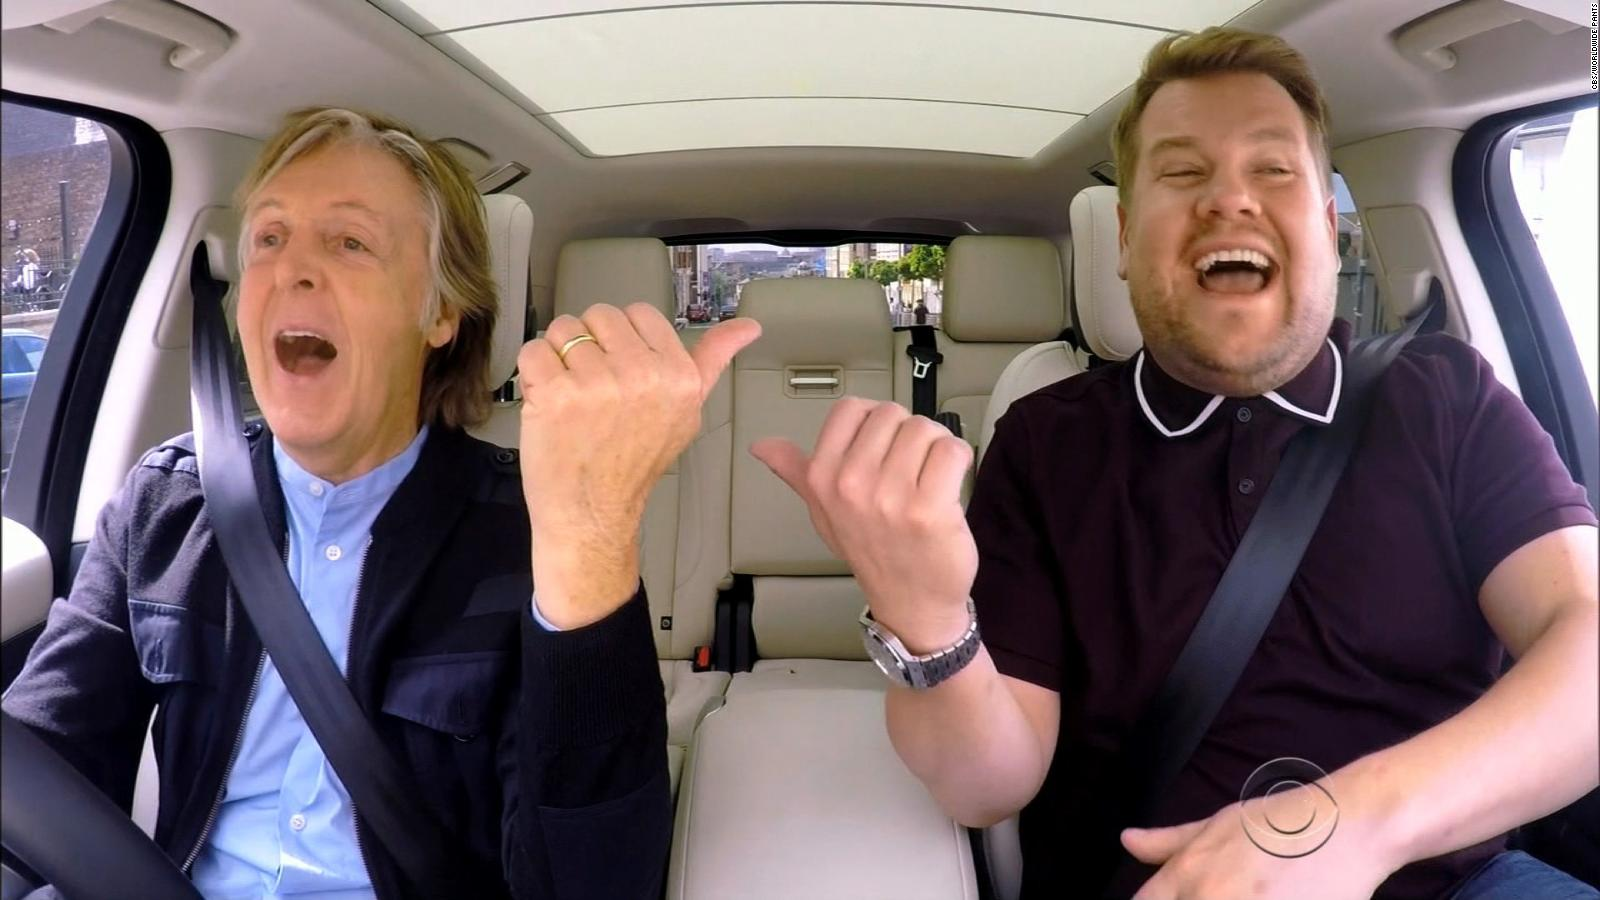 McCartney shares inspiration for 'Let It Be'